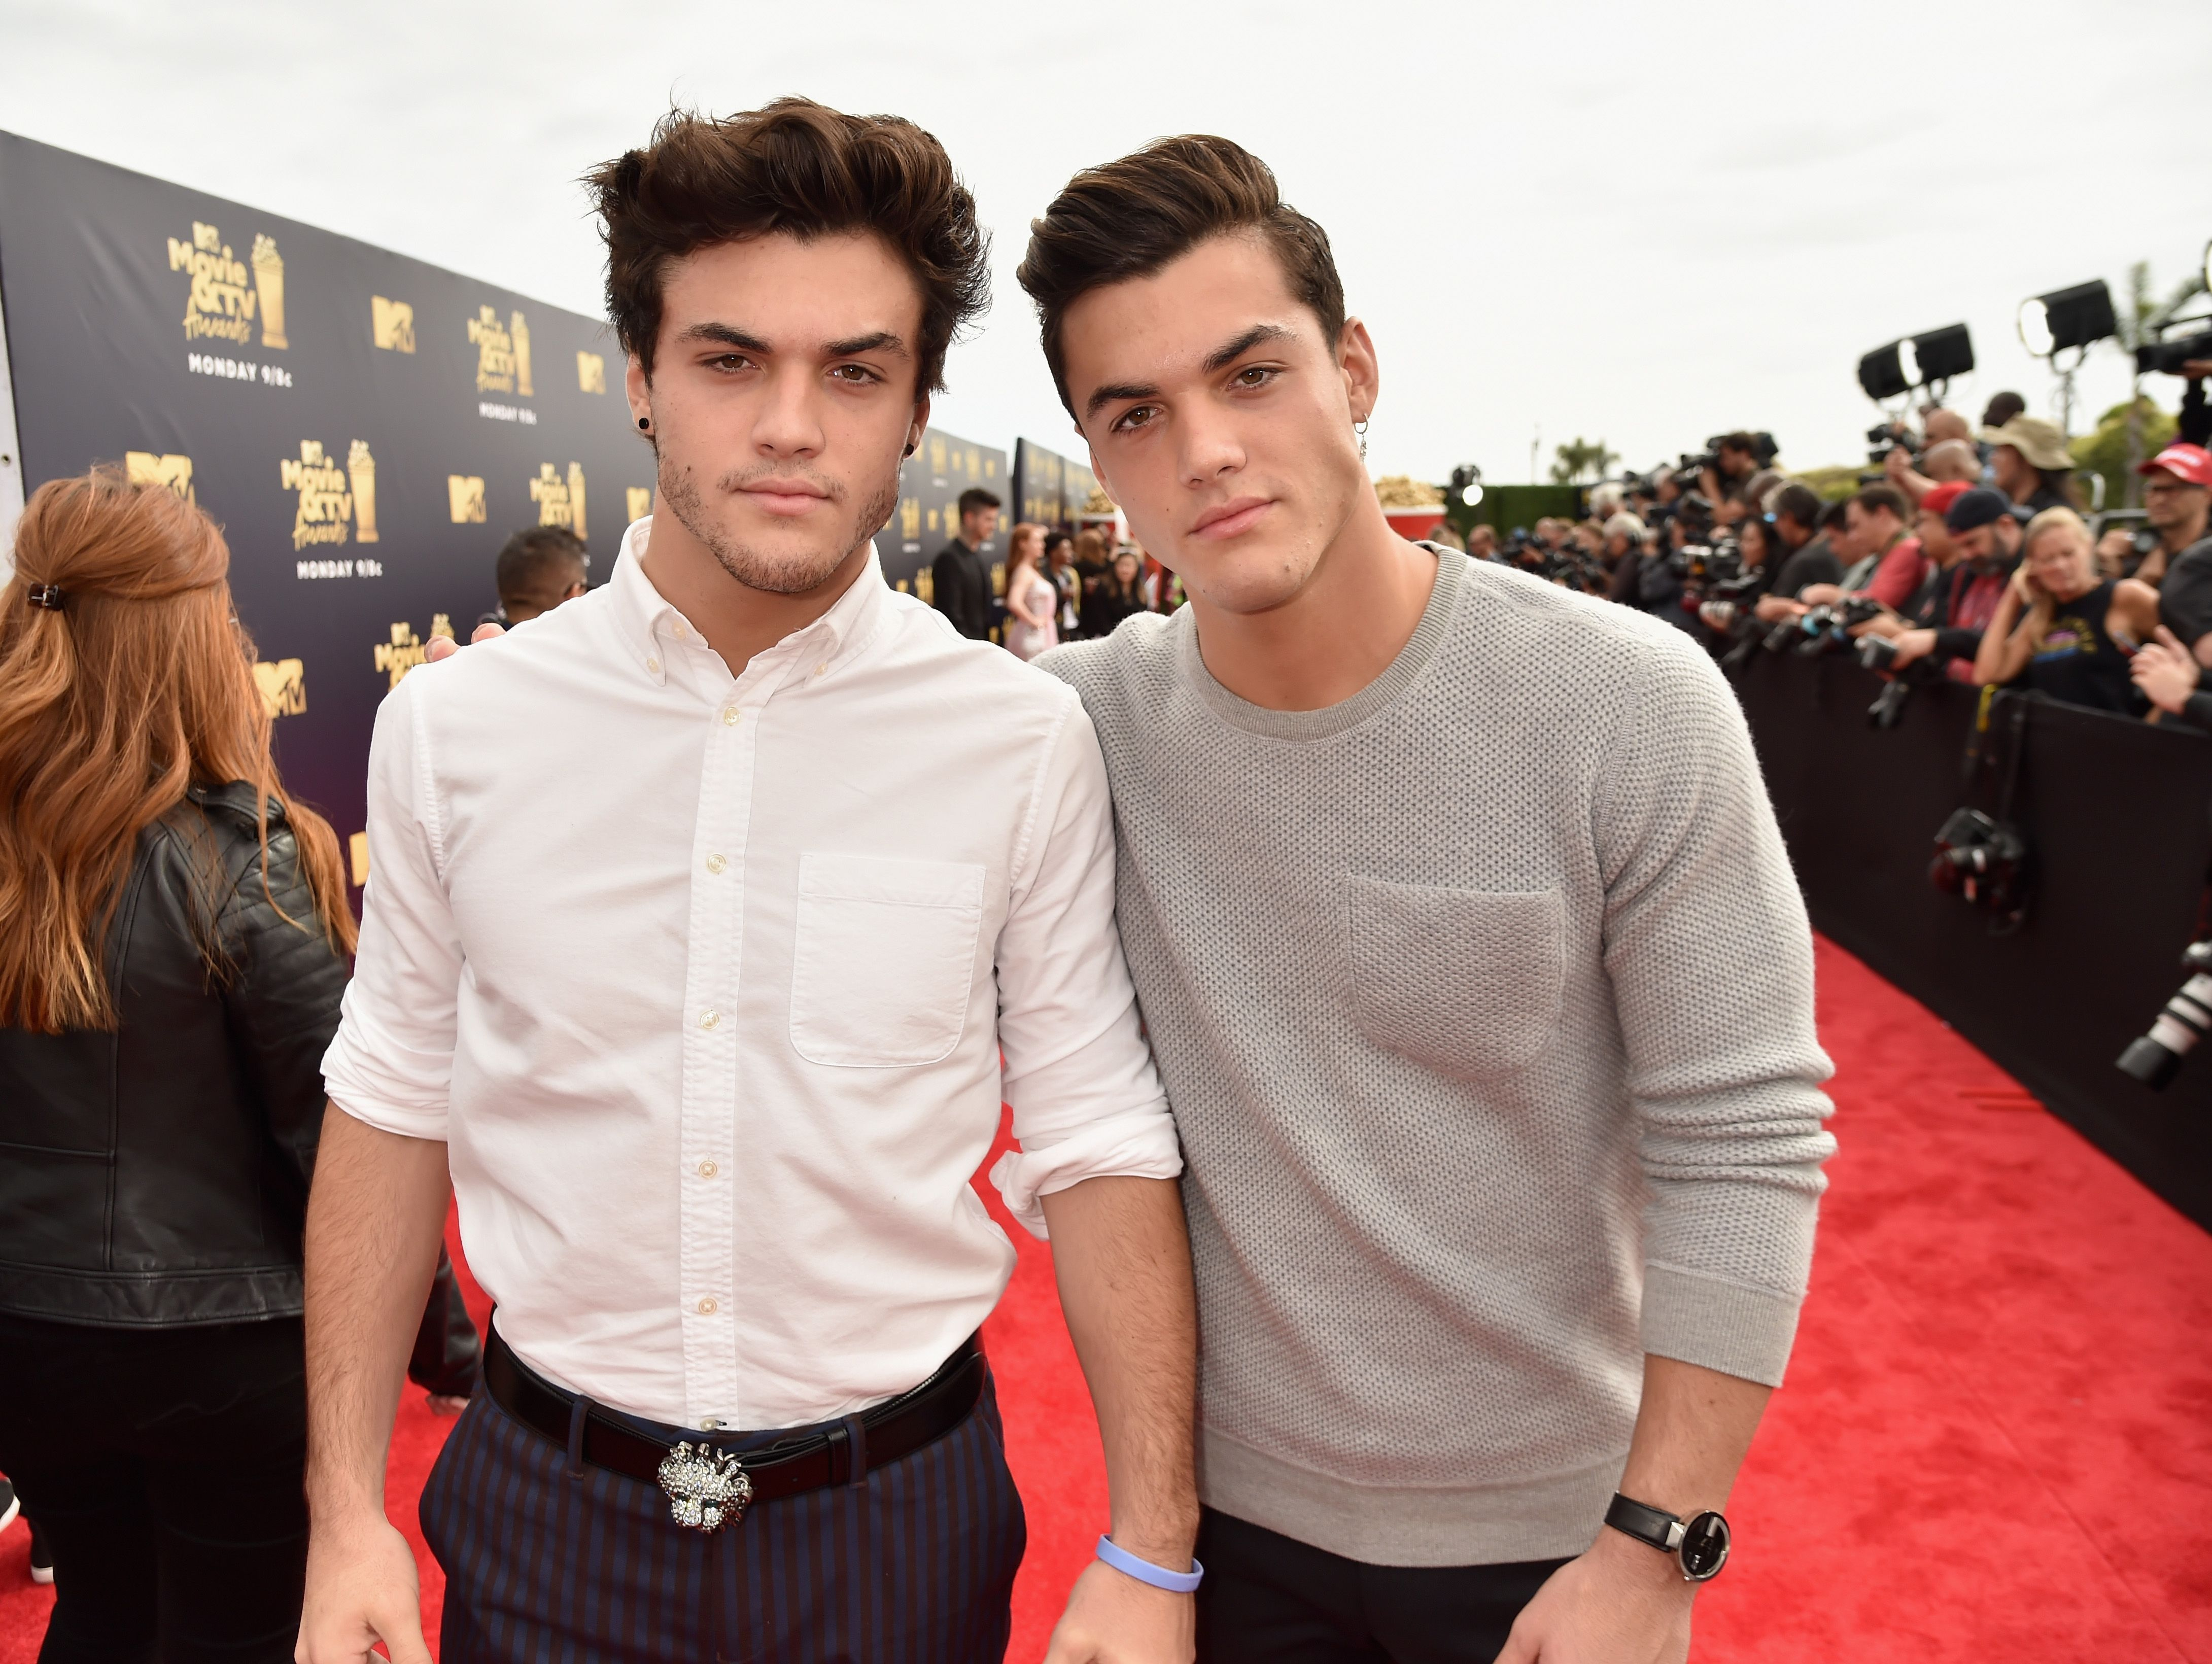 The Dolan Twins Tearfully Reveal They're Stepping Back from YouTube